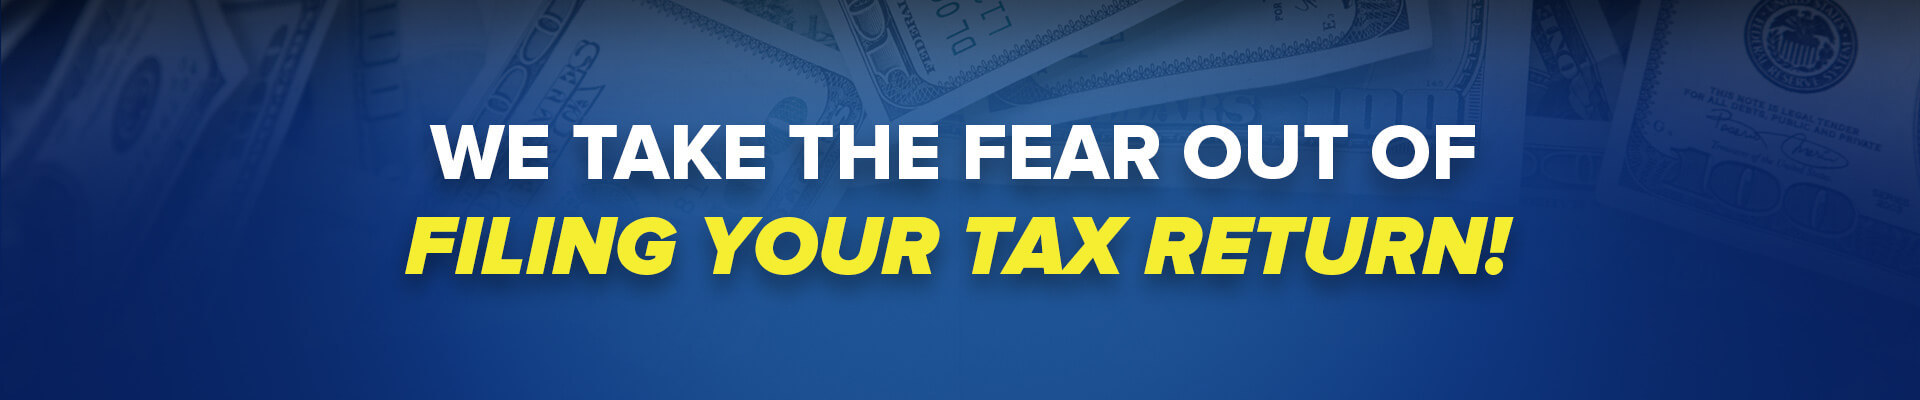 We take the fear out of filing your tax return!